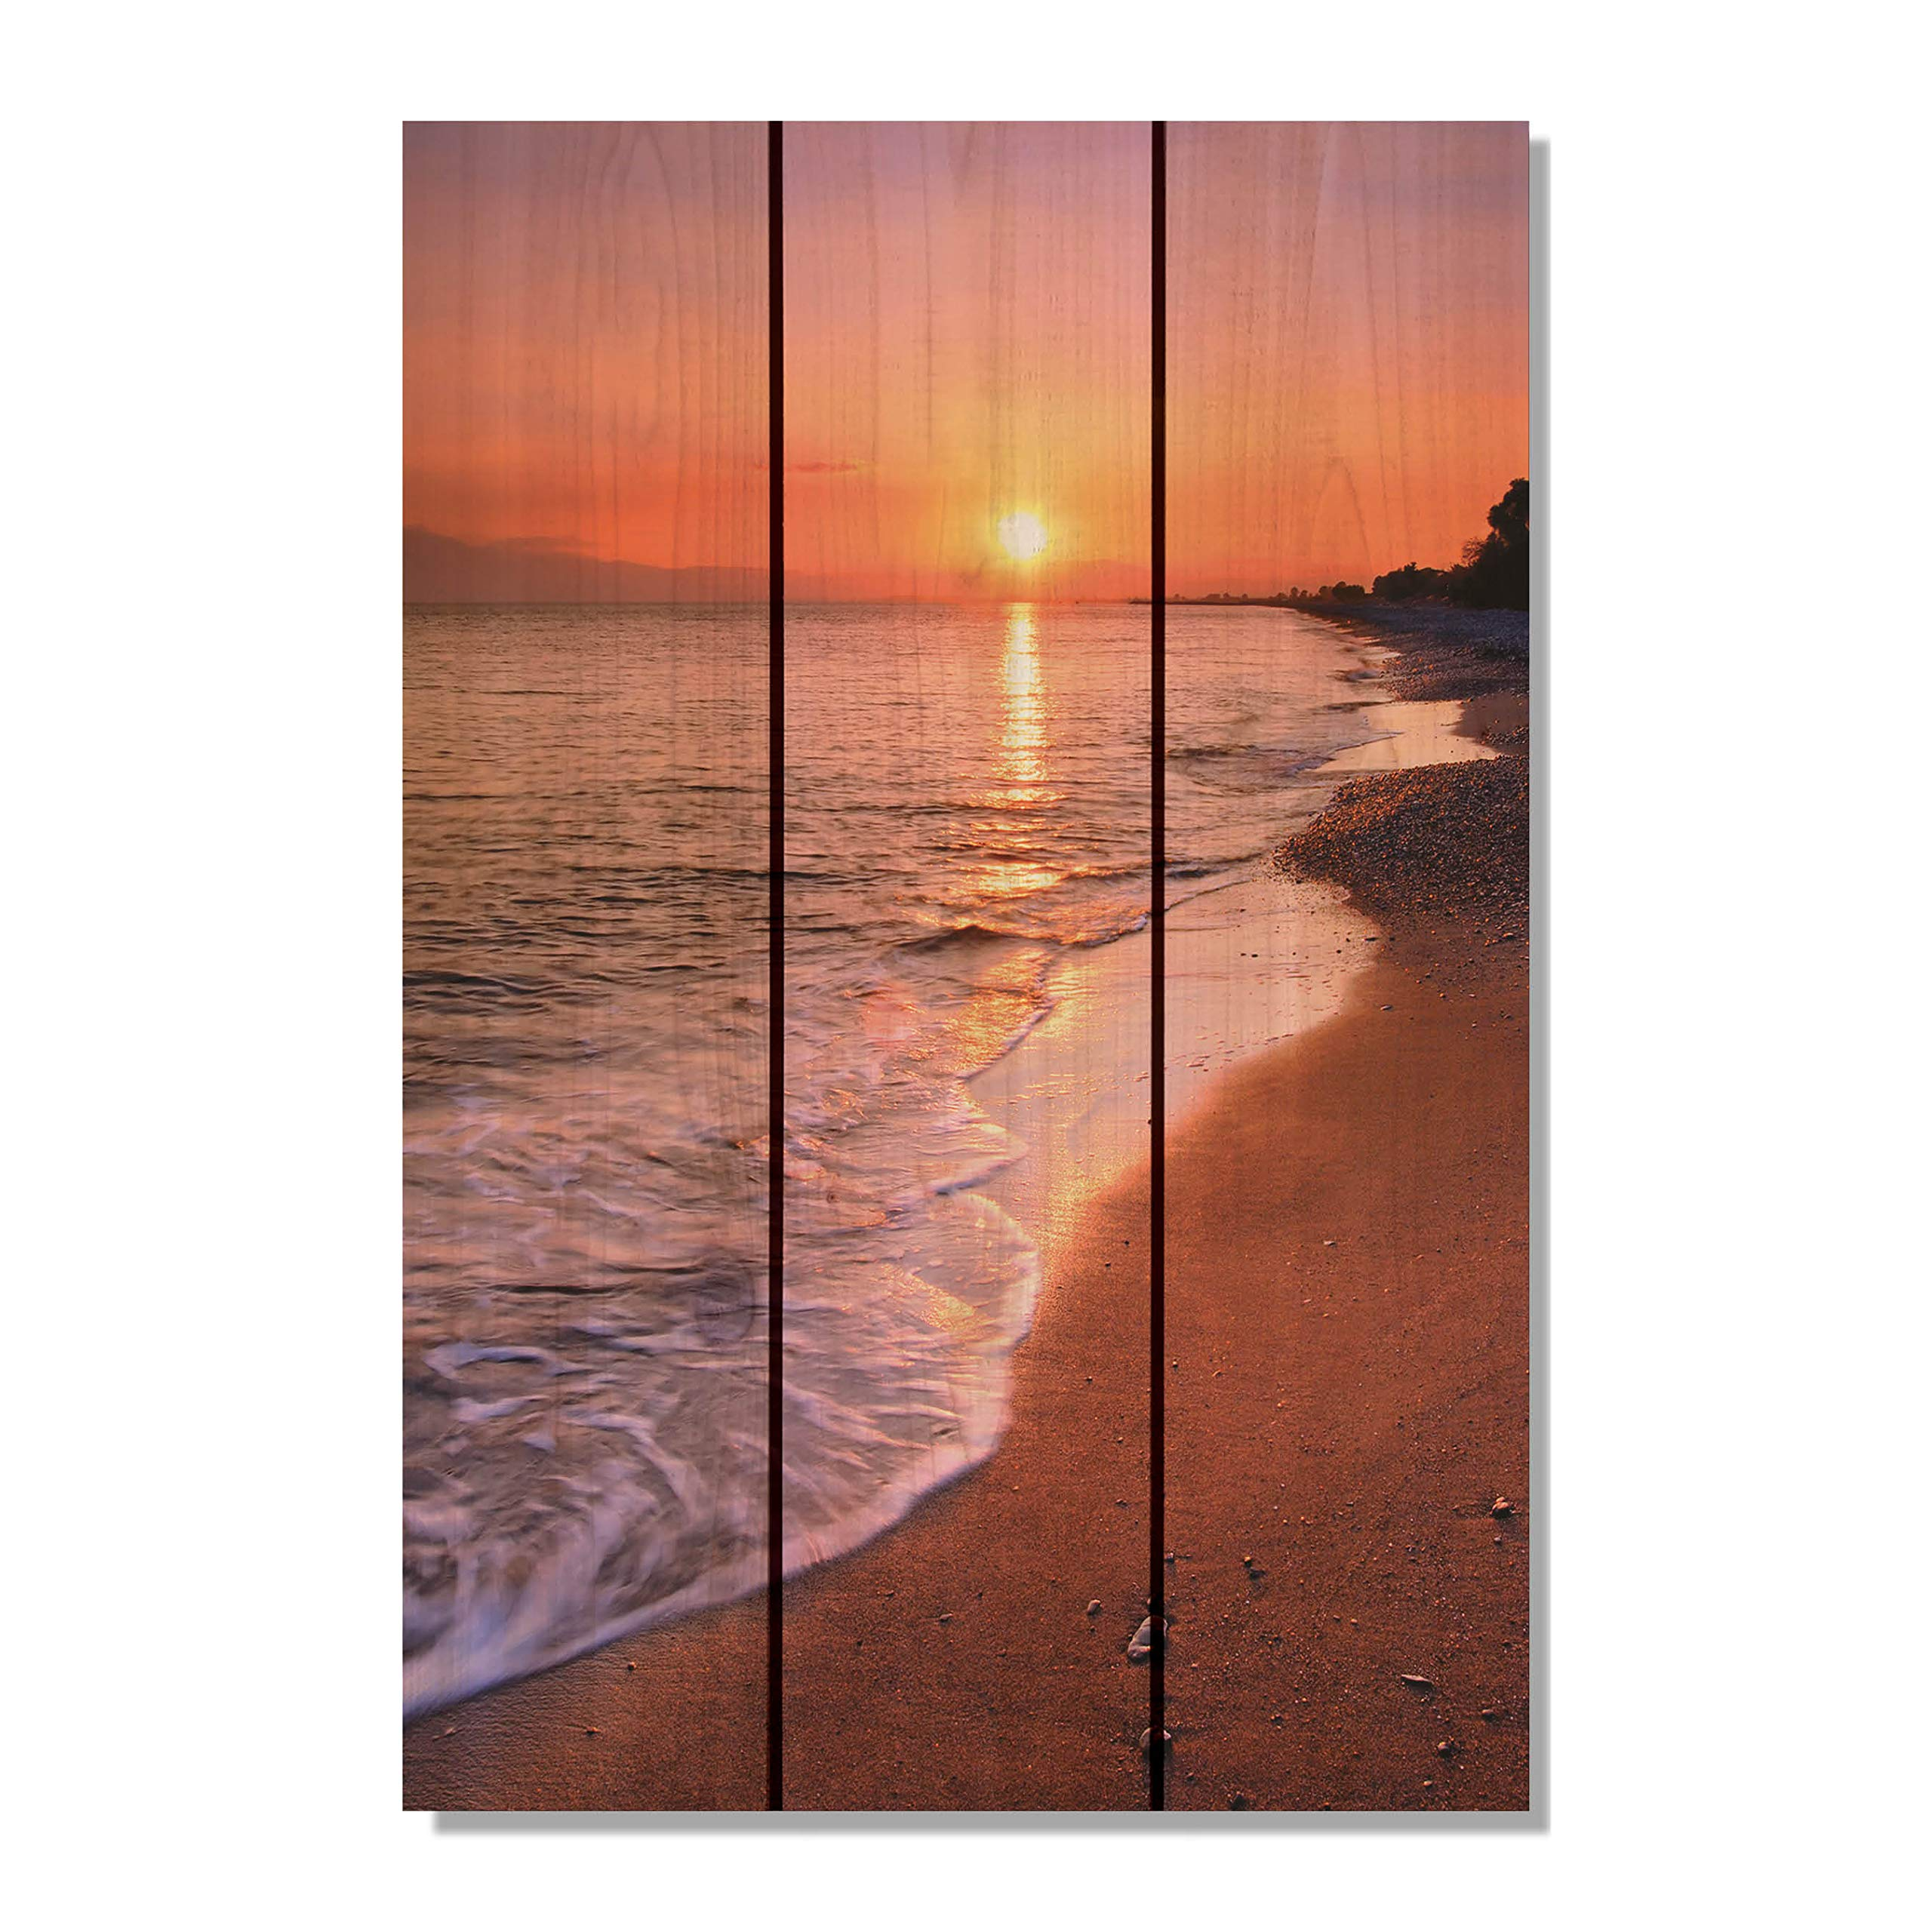 Gizaun Art SUB1624 Sunset Beach 16-Inch by 24-Inch Wall Art, Inside/Outside, Full Color Cedar